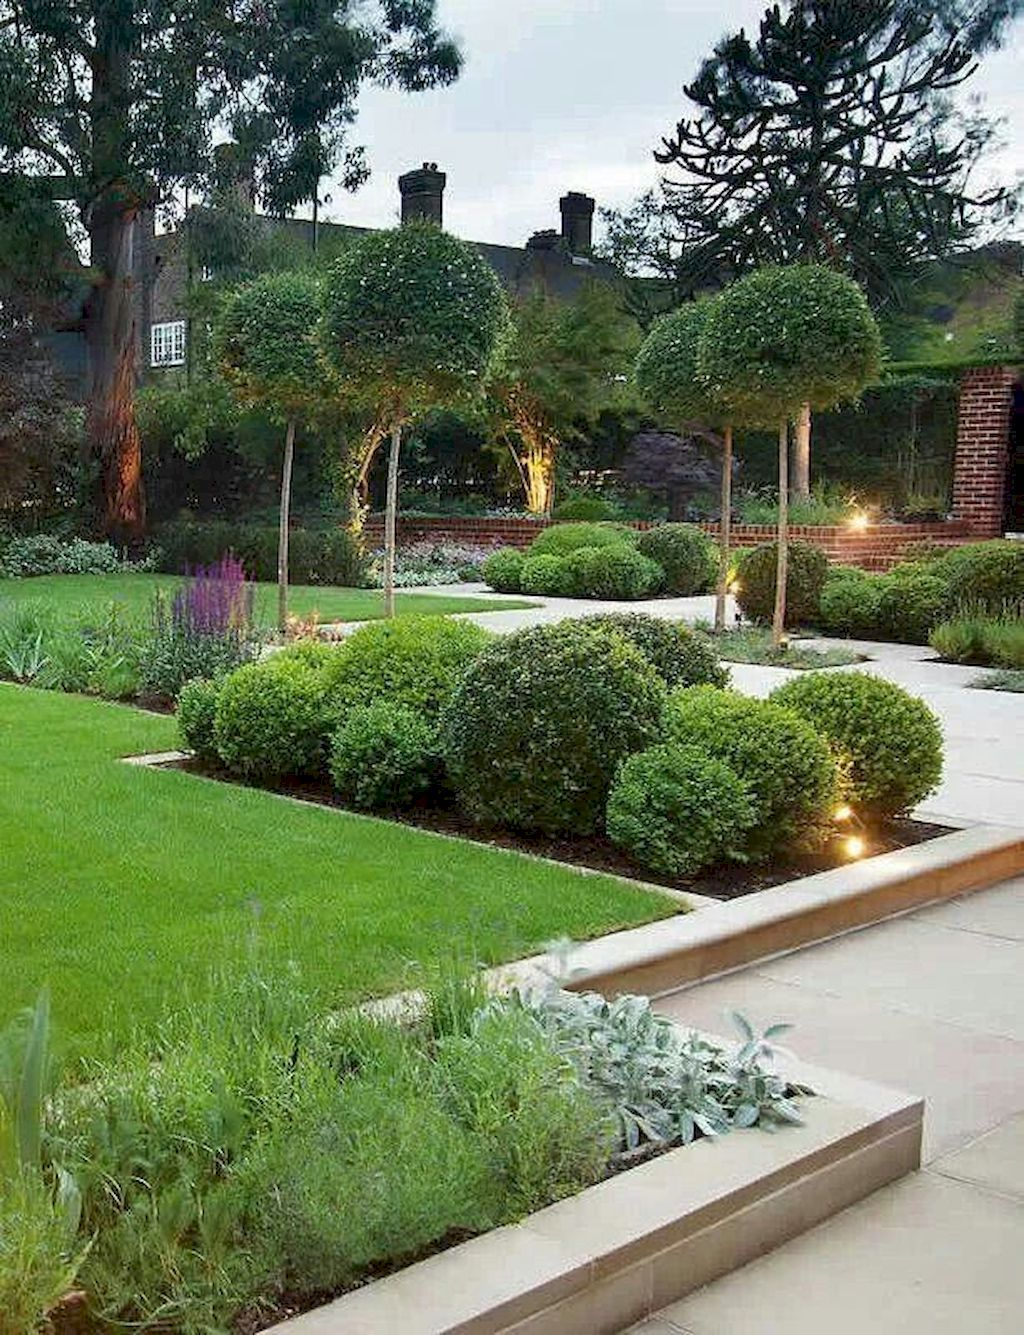 #contemporarygardendesign